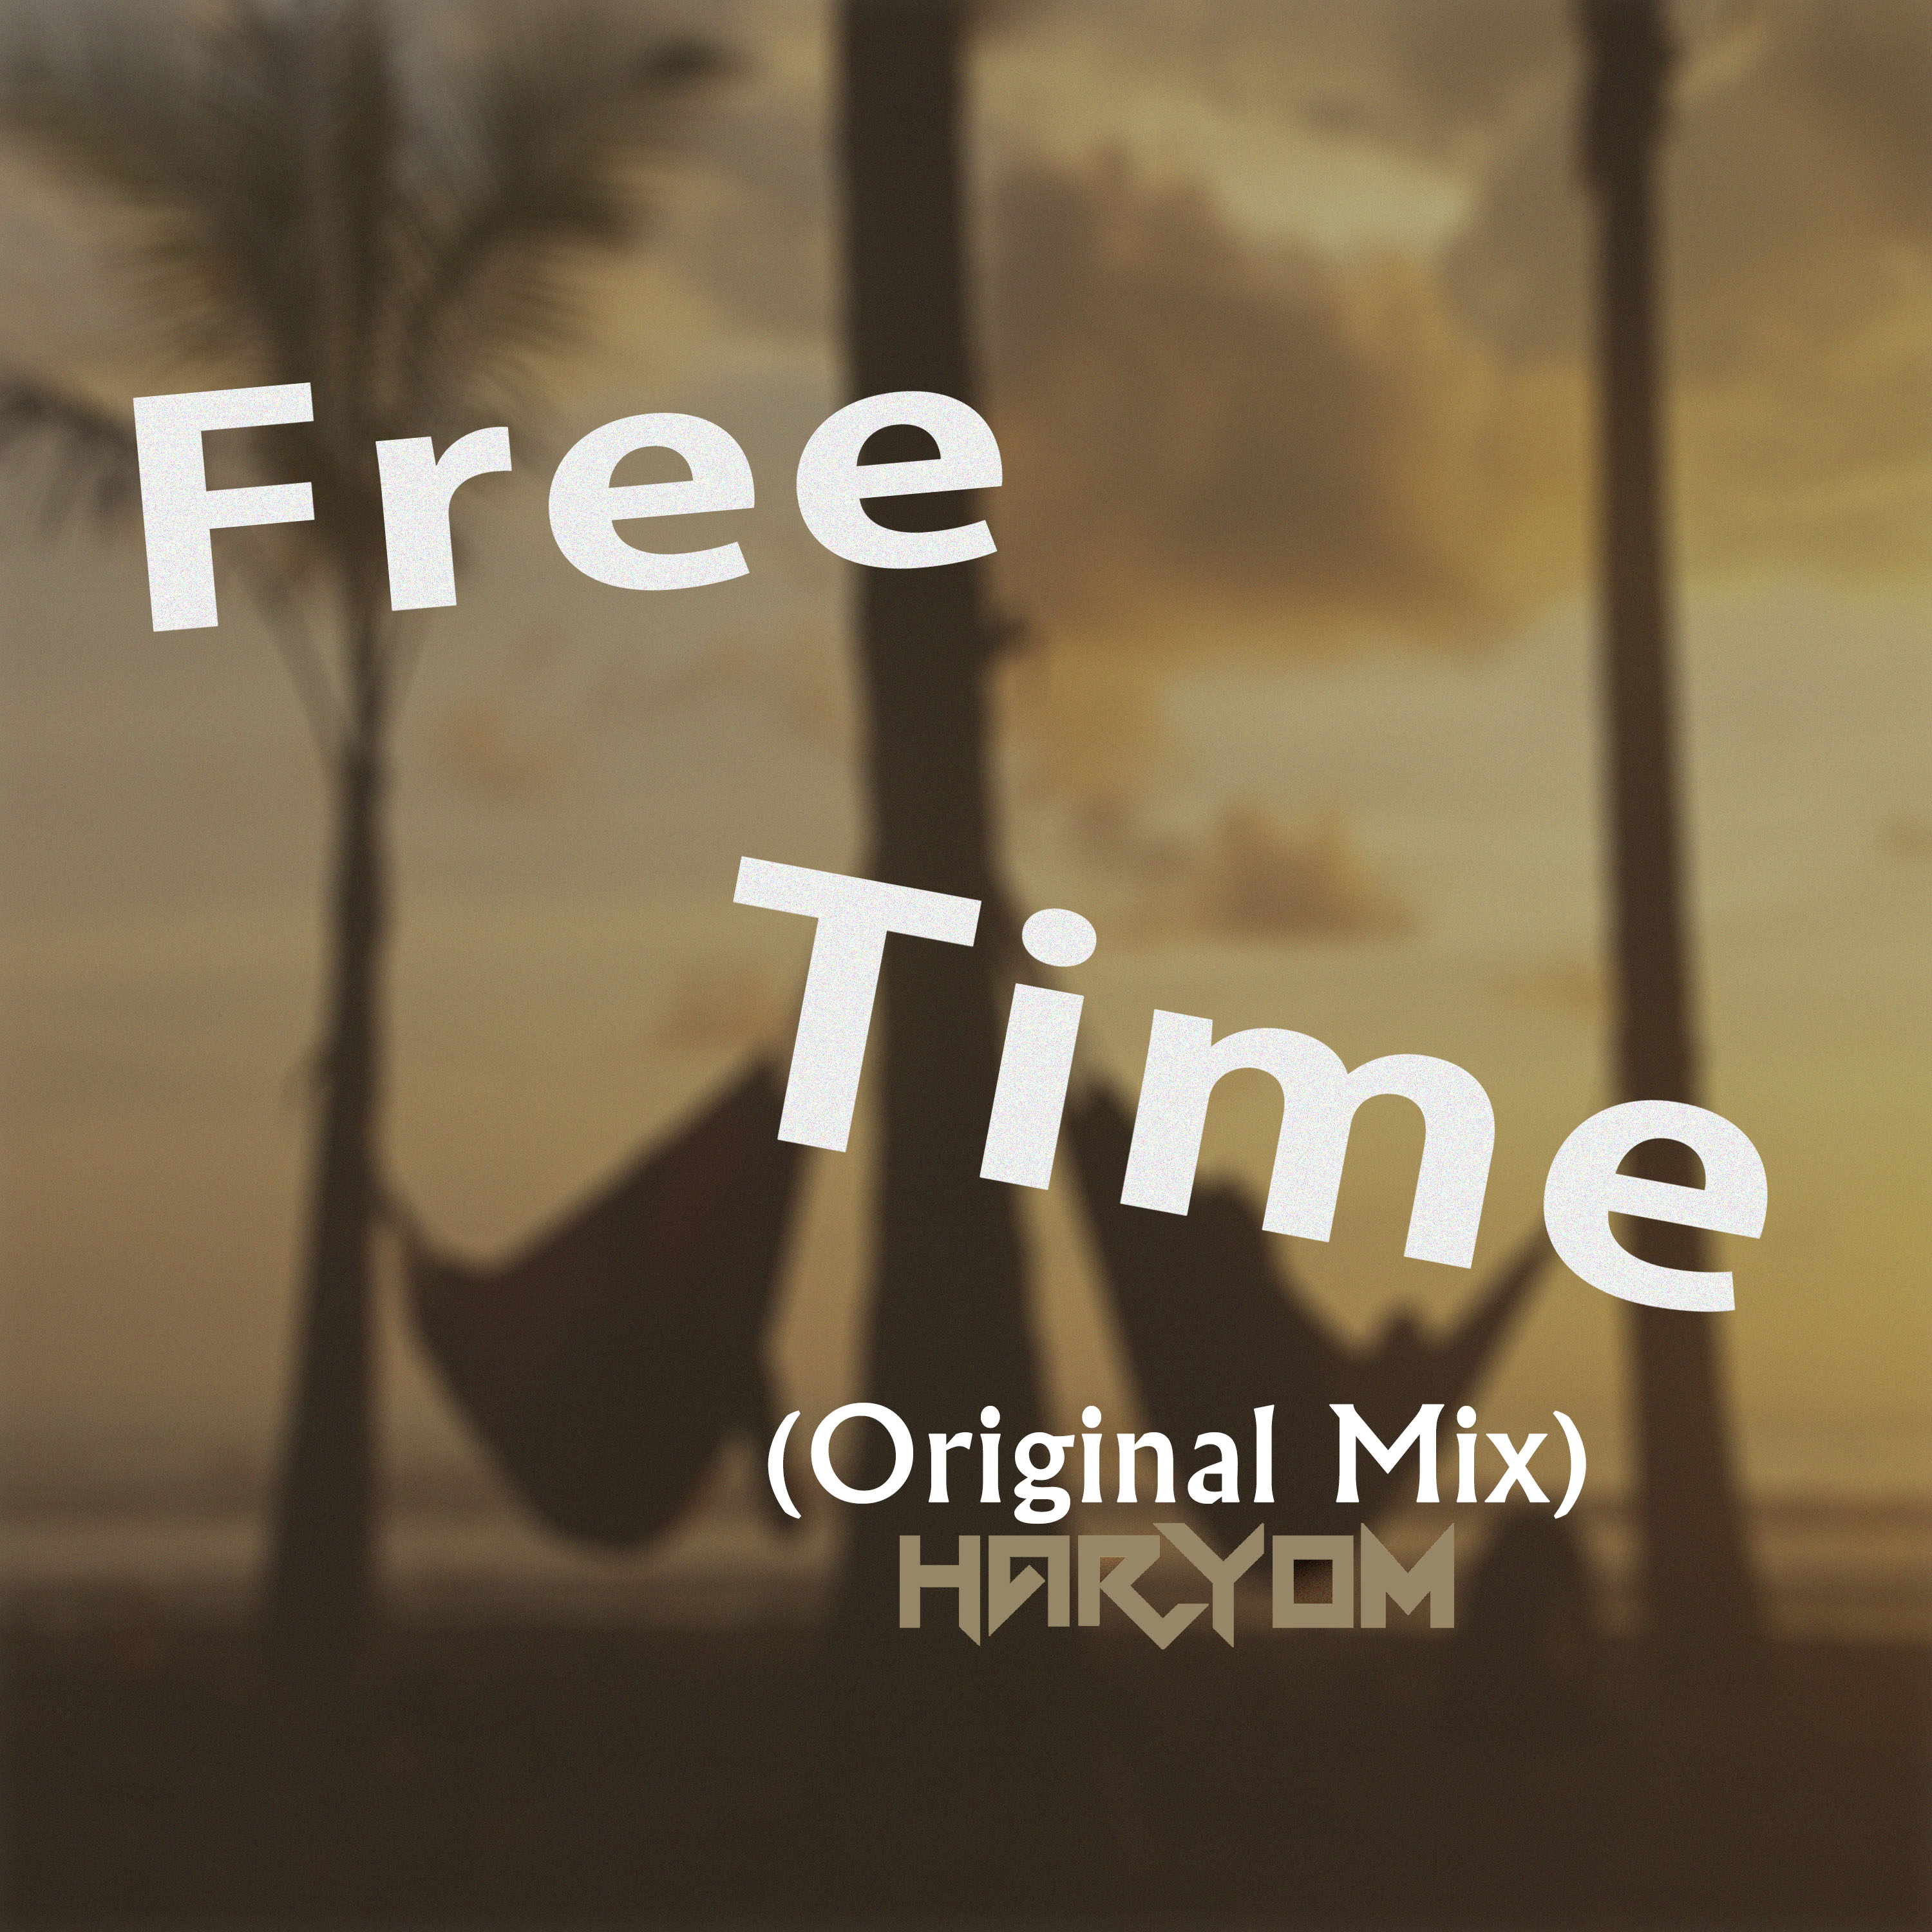 Haryom - Free Time (Original Mix)